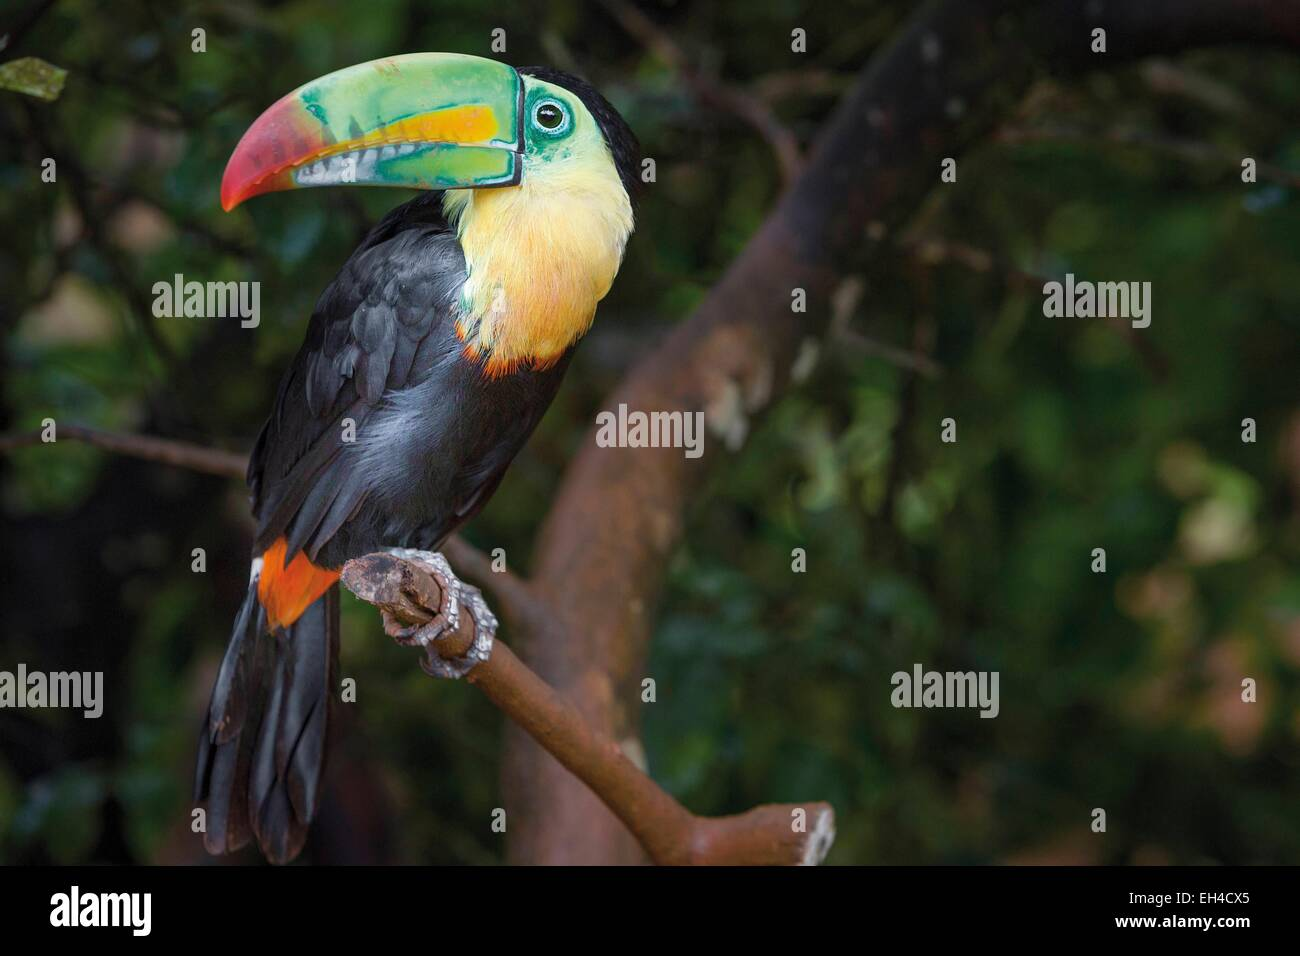 Panama, Darien province, Darien National Park, listed as World Heritage by UNESCO, Embera indigenous community, portrait of a toucan on a branch Stock Photo